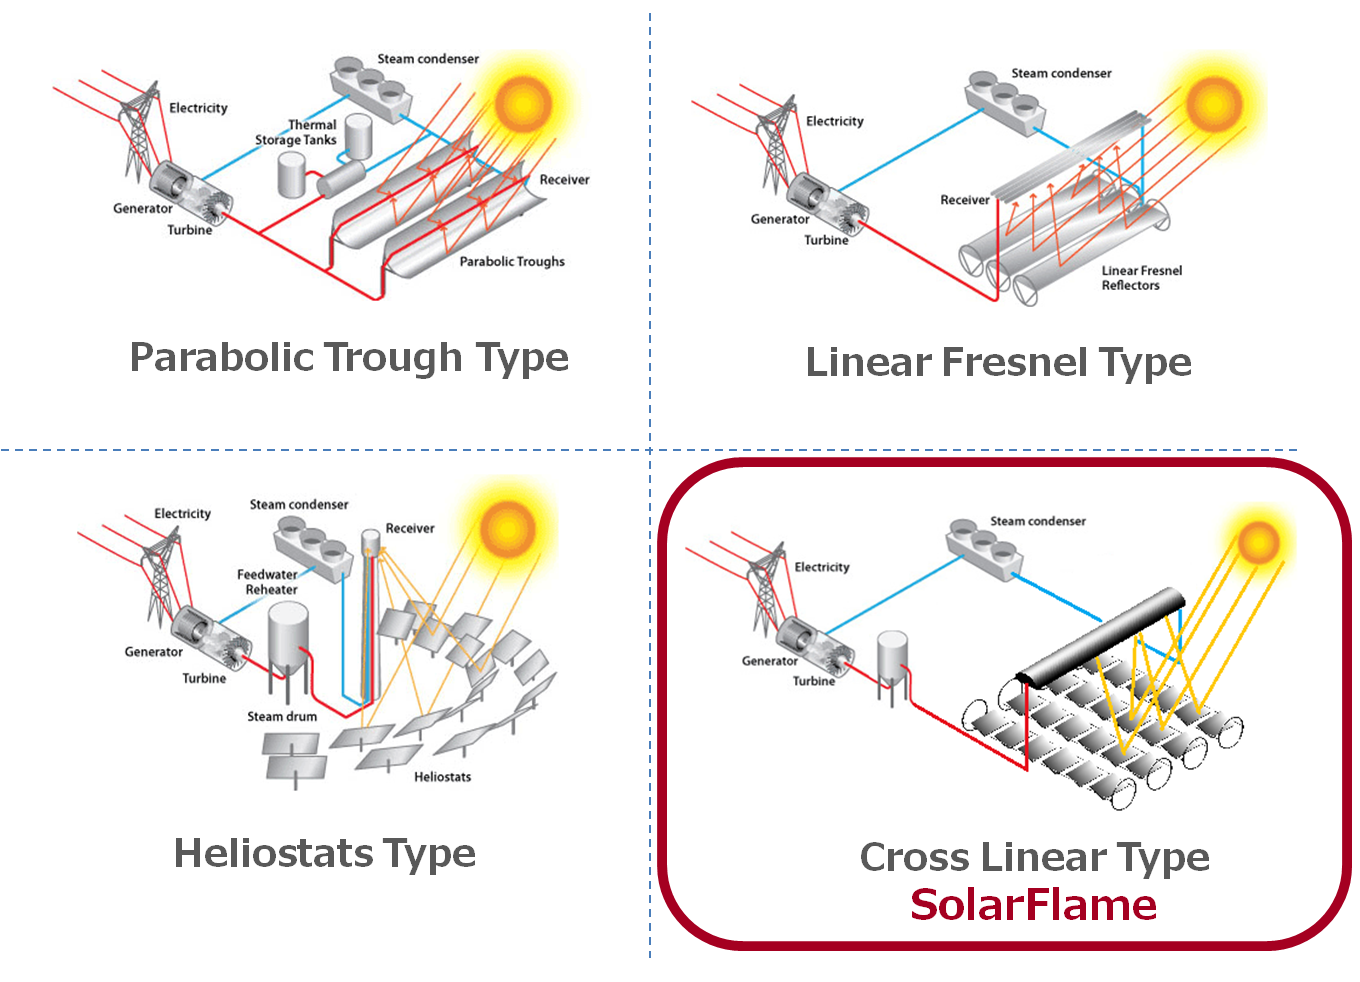 hight resolution of solar thermal power generation concentrated solar thermal power generation technology uses mirrors to collect solar